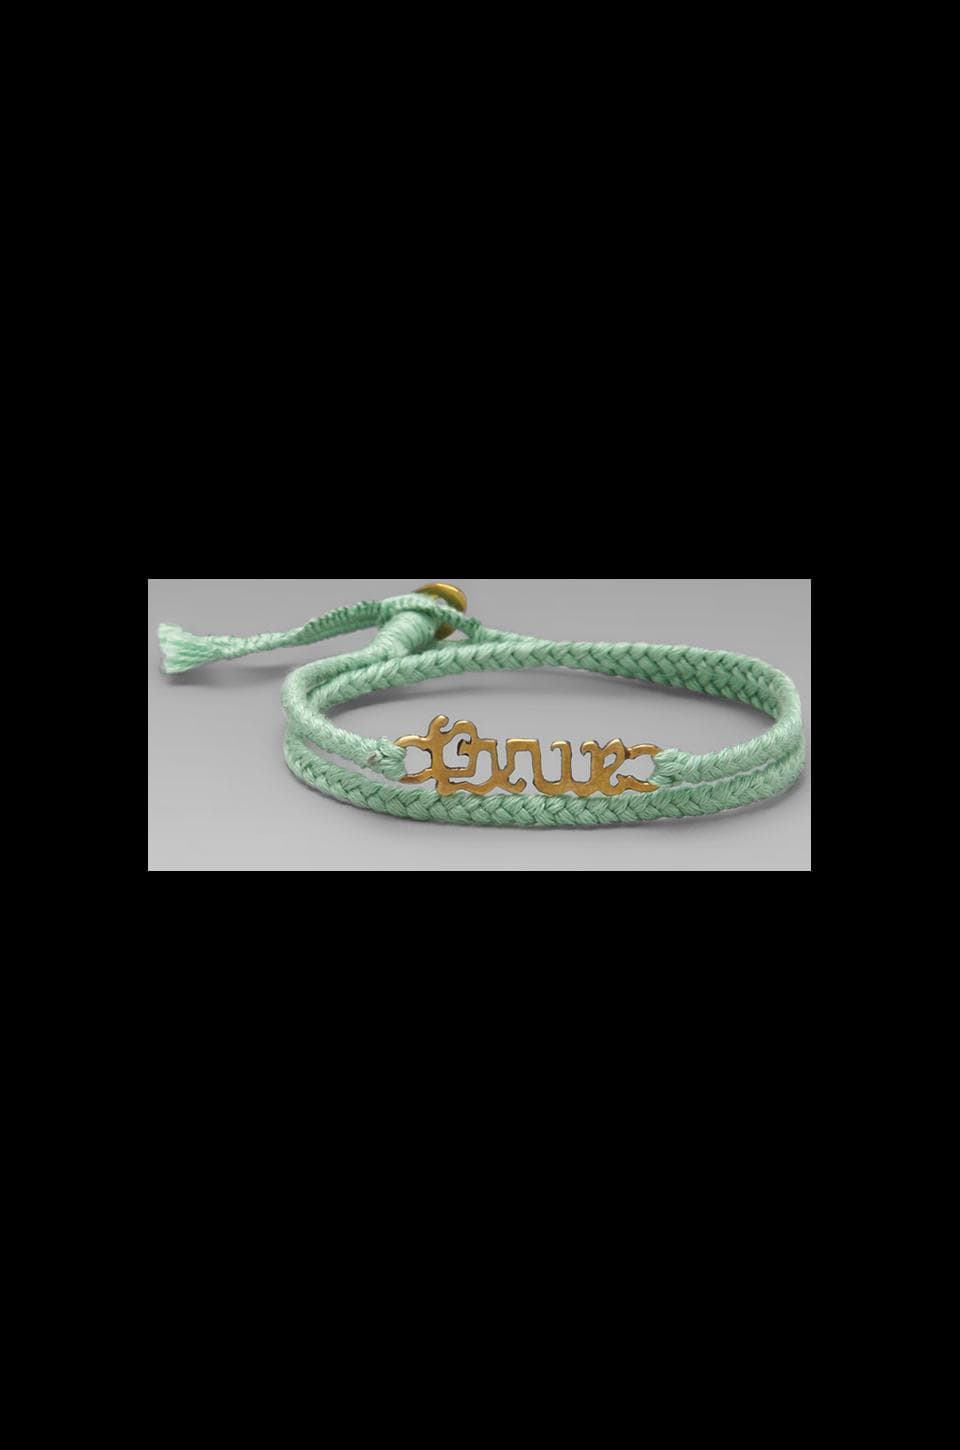 The Brave Collection Brave Bracelet in Mint Brass